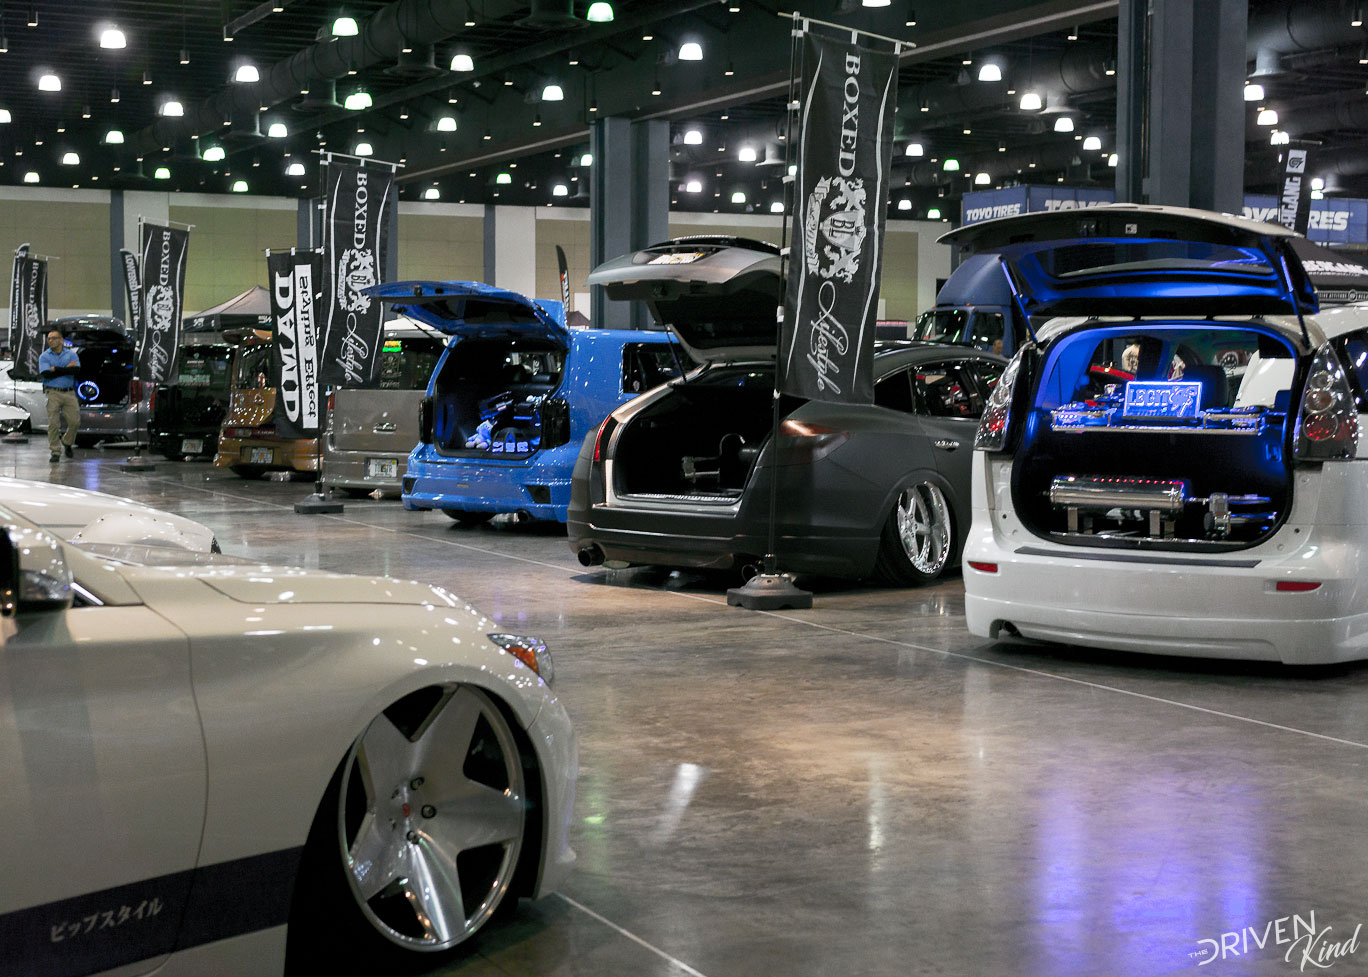 Boxed Lifestyle STANCENATION FLORIDA PALM BEACH CONVENTION CENTER 2017 Pt. 1 The Driven Kind Coverage